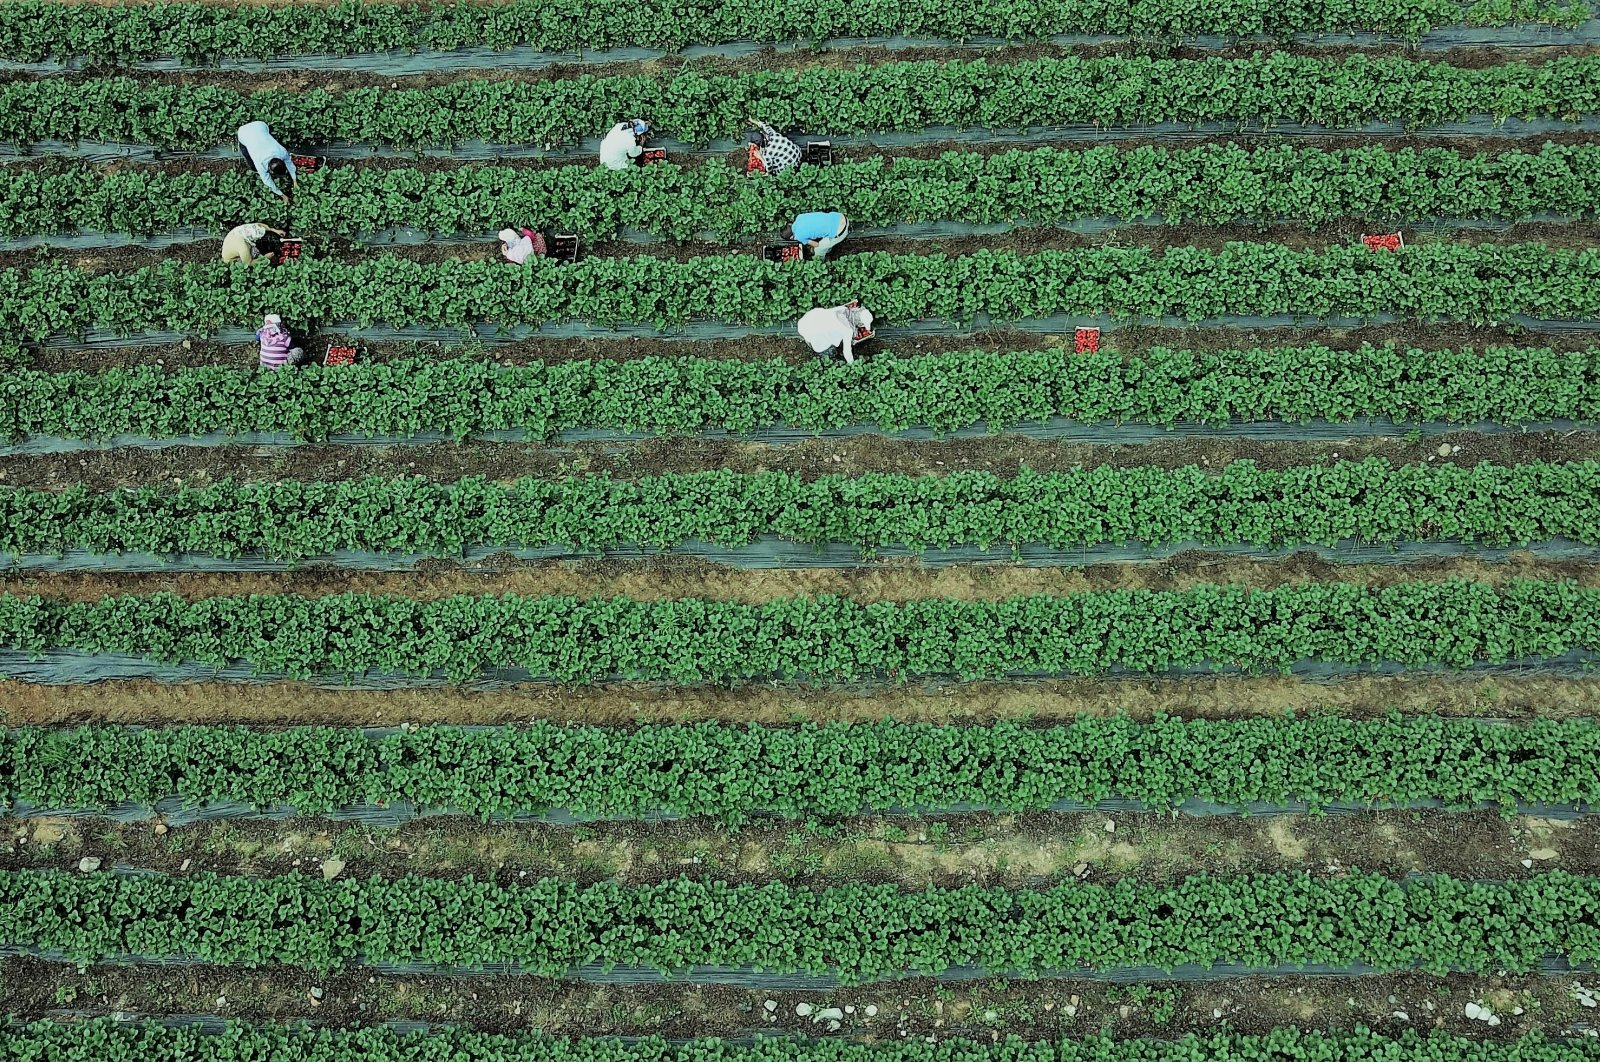 Farmers work in a strawberry field in southern Turkey's Kahramanmaraş province, May 27, 2020. (AA Photo)